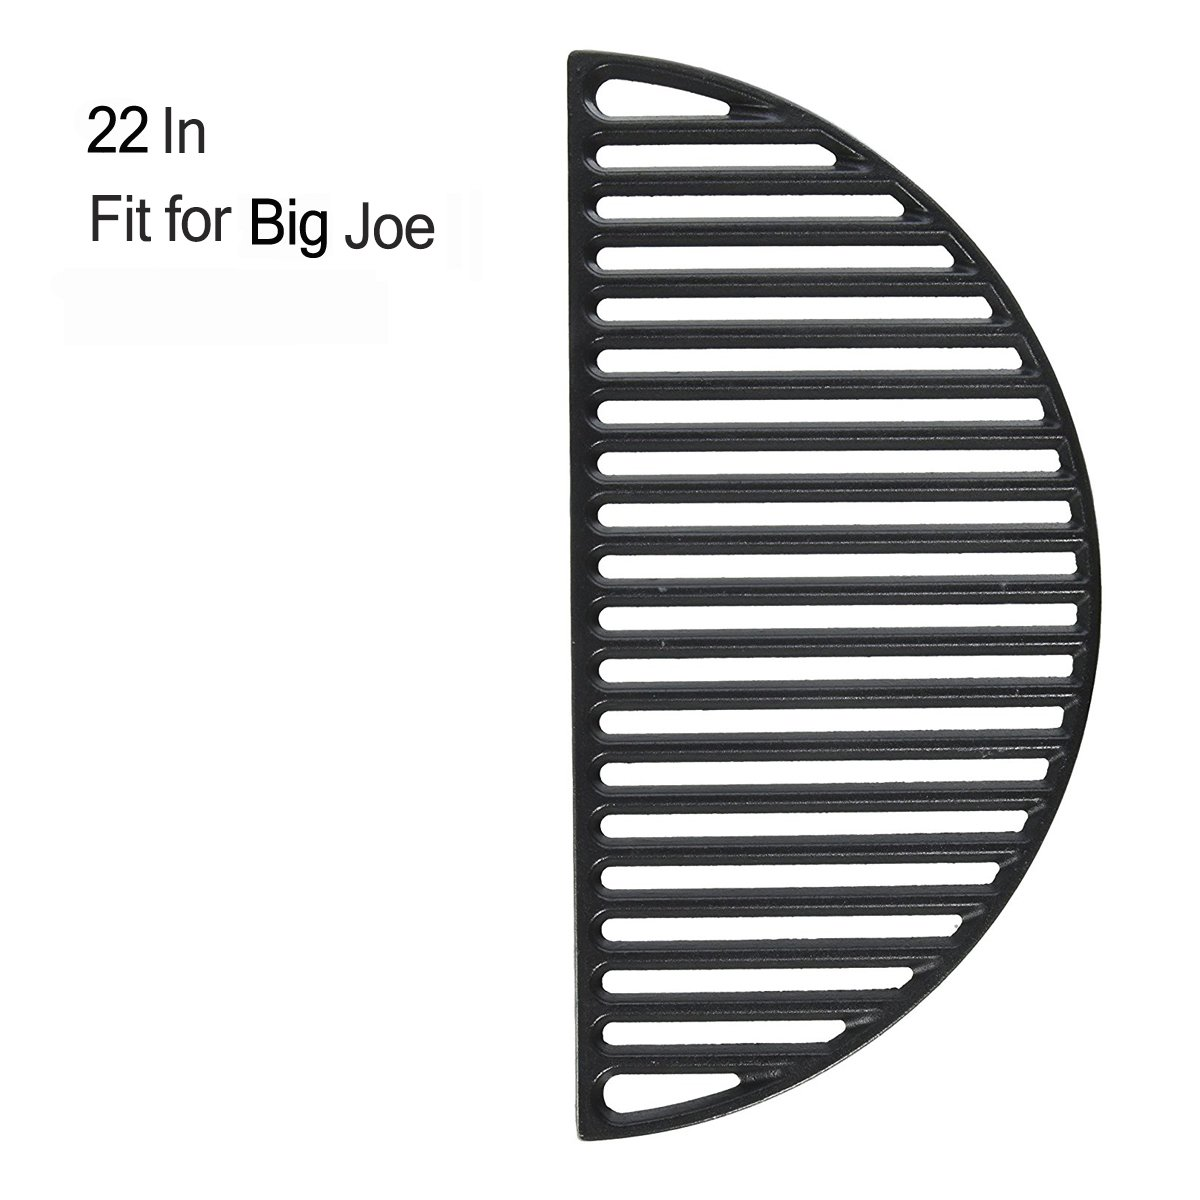 "22"" Half Moon Cast Iron Divide & Conquer Cooking Grate fit for Classic Joe Reversible Grate for Large Big Green Egg or any 22 Inch Kamado Grill Barbeque Accessories for Searing"